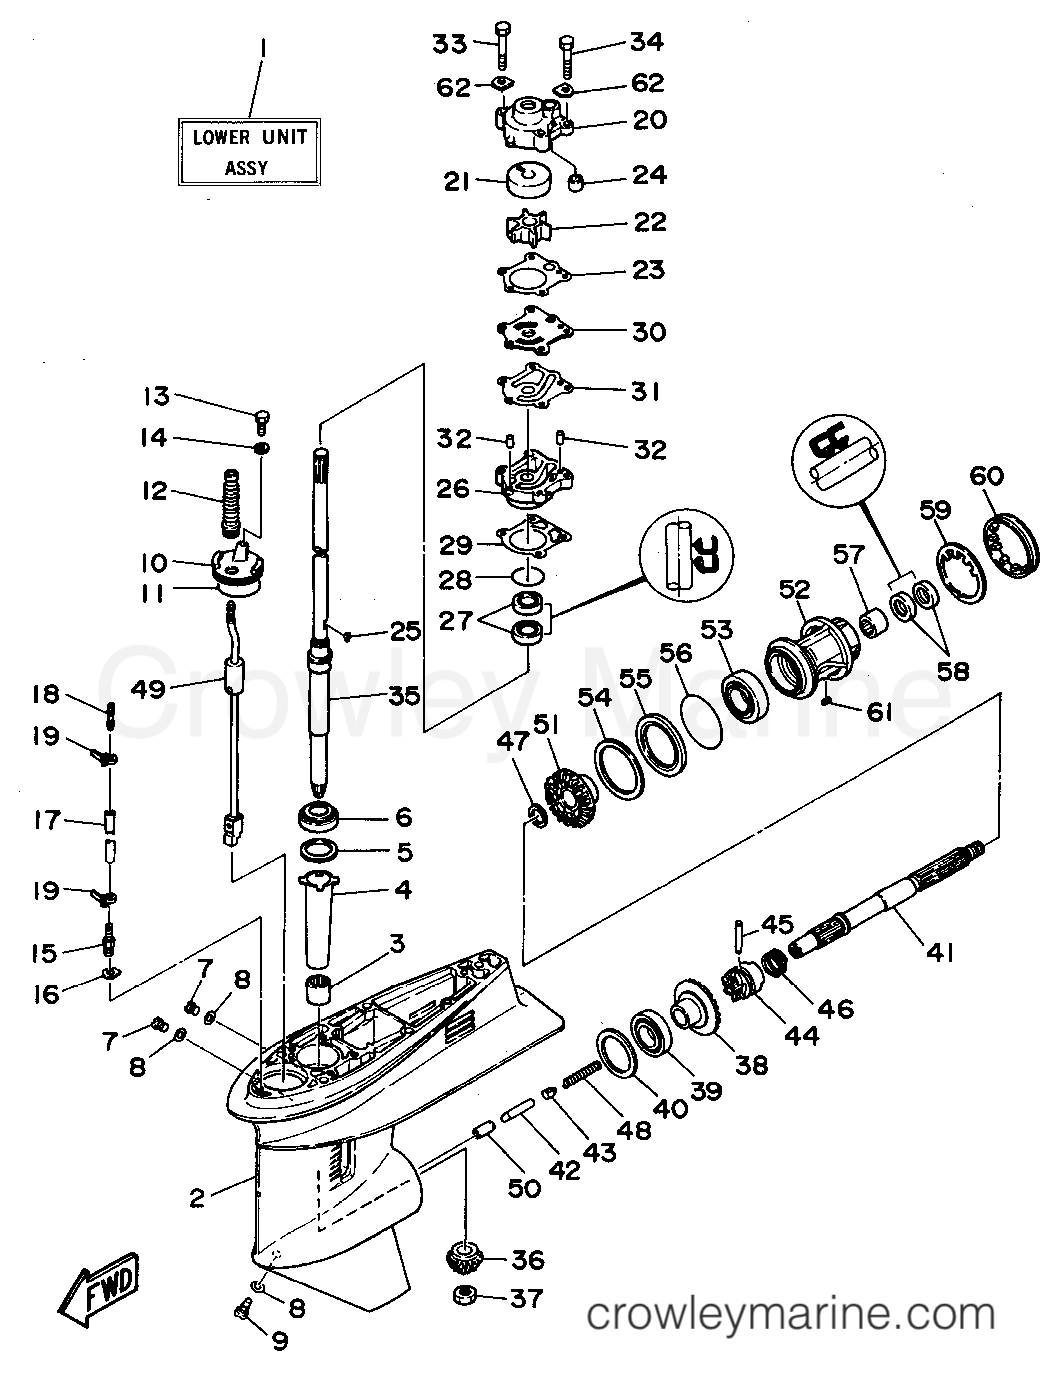 Lower Casing Drive 1